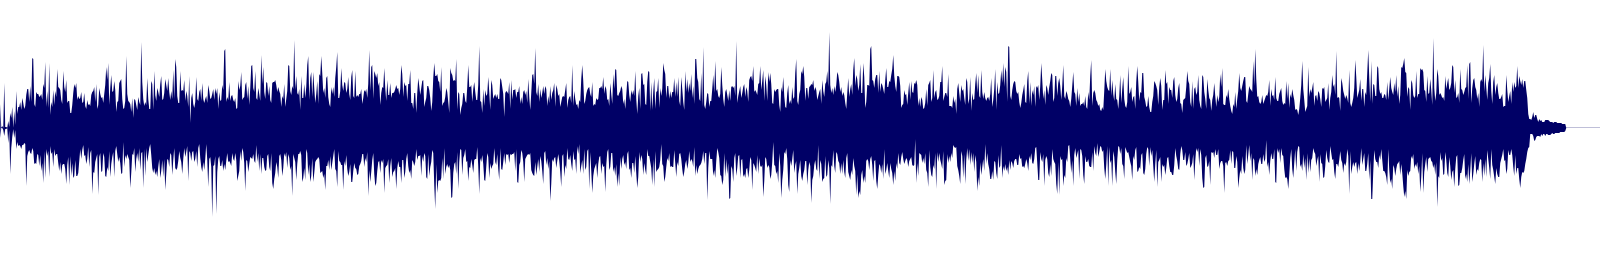 waveform of track #154465